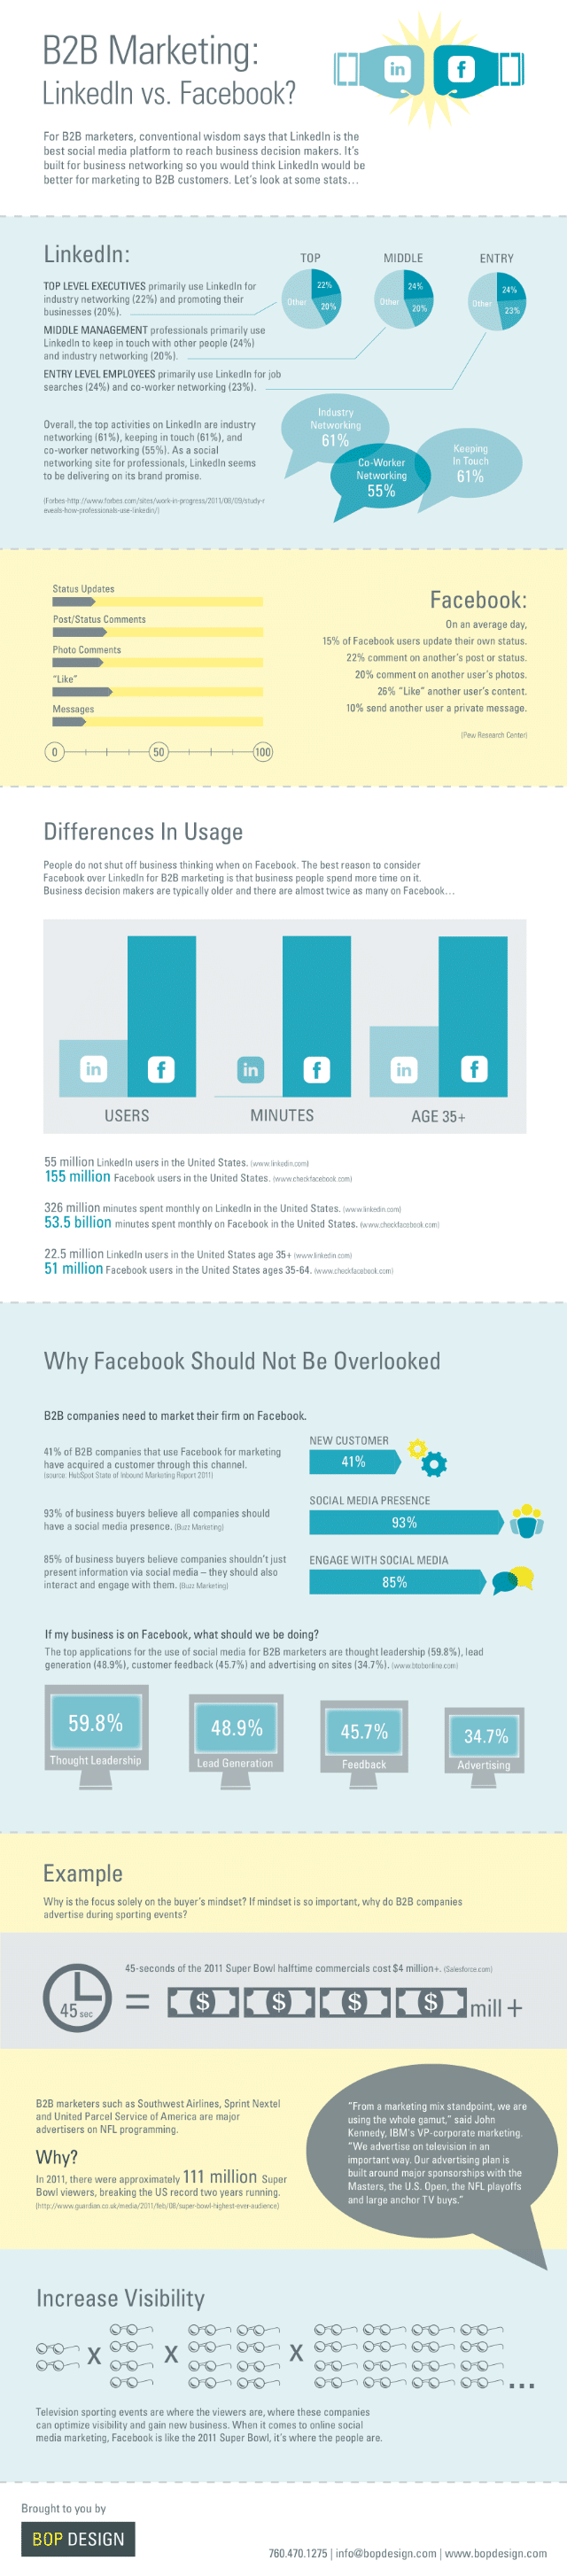 B2B Marketing: Facebook vs. LinkedIn [Infographic]